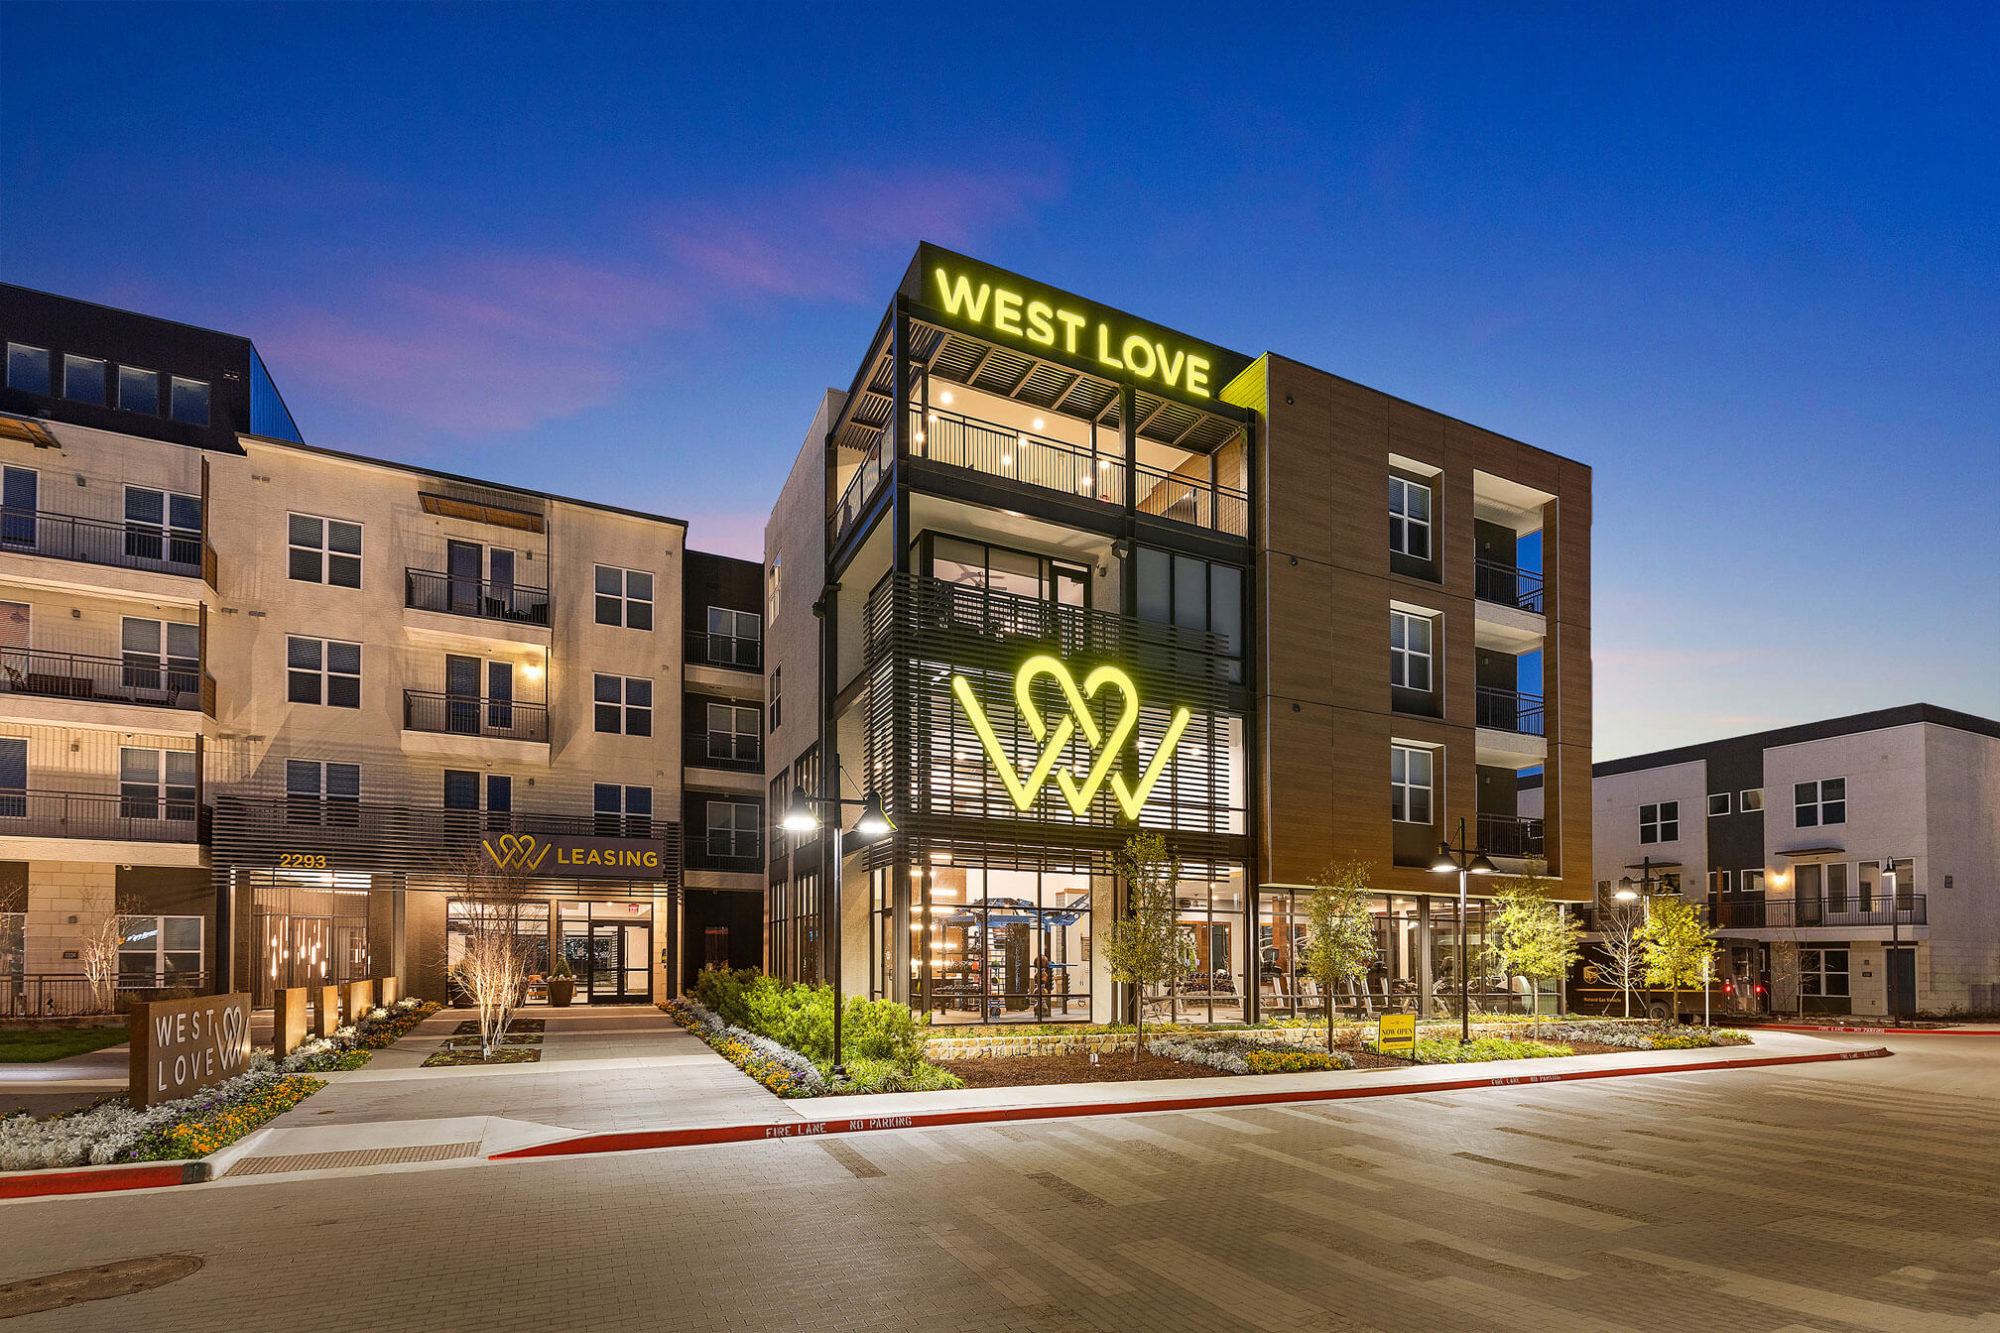 West Love leasing and community building with decorative landscaping and neon signage